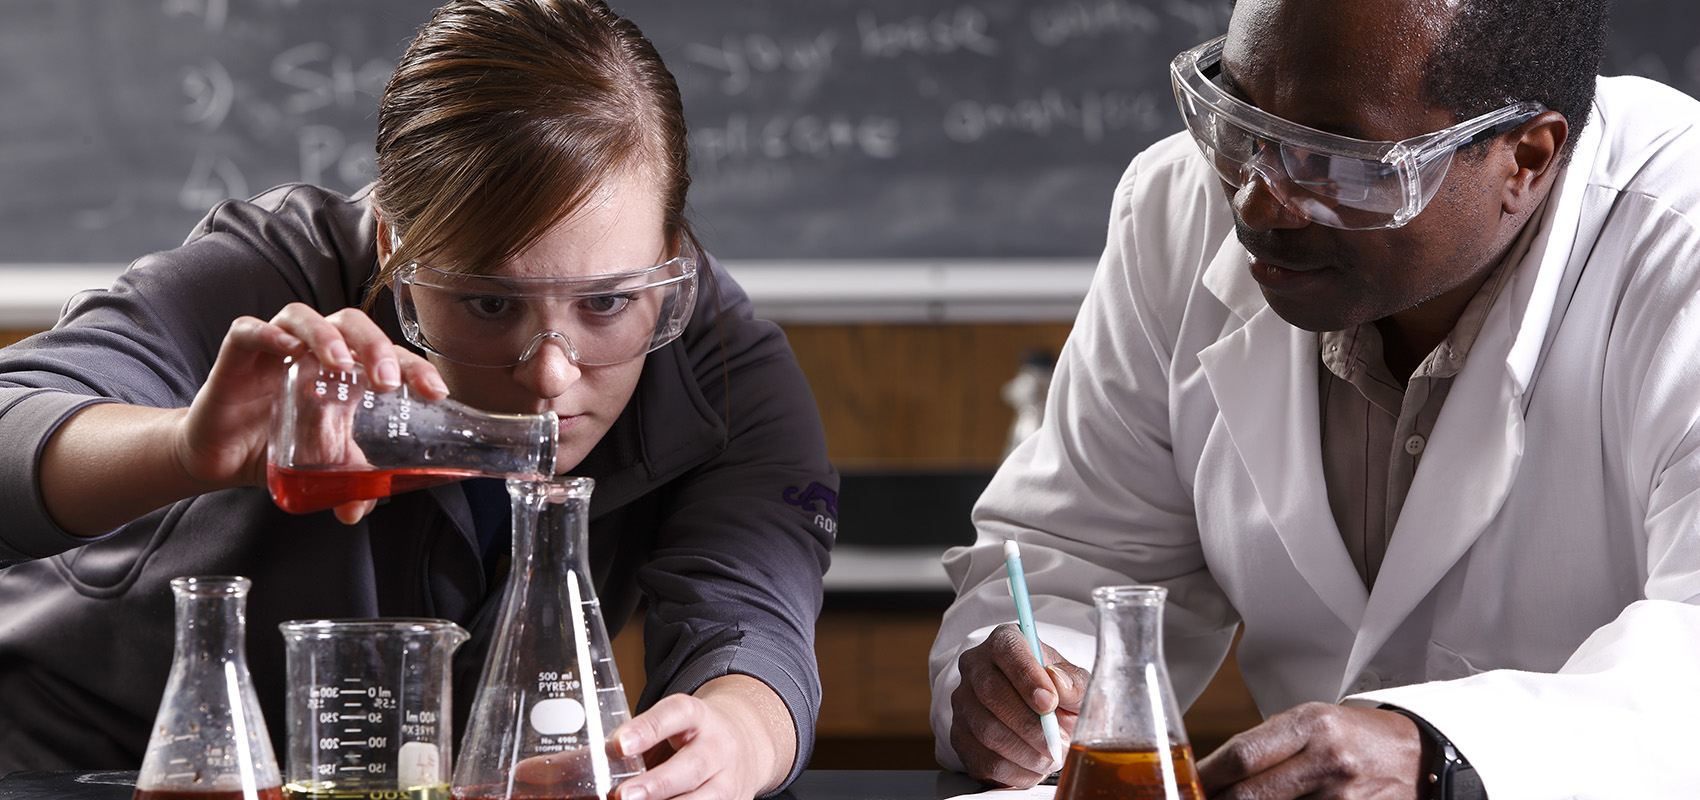 Professor George Mwangi working with a student during science lab.